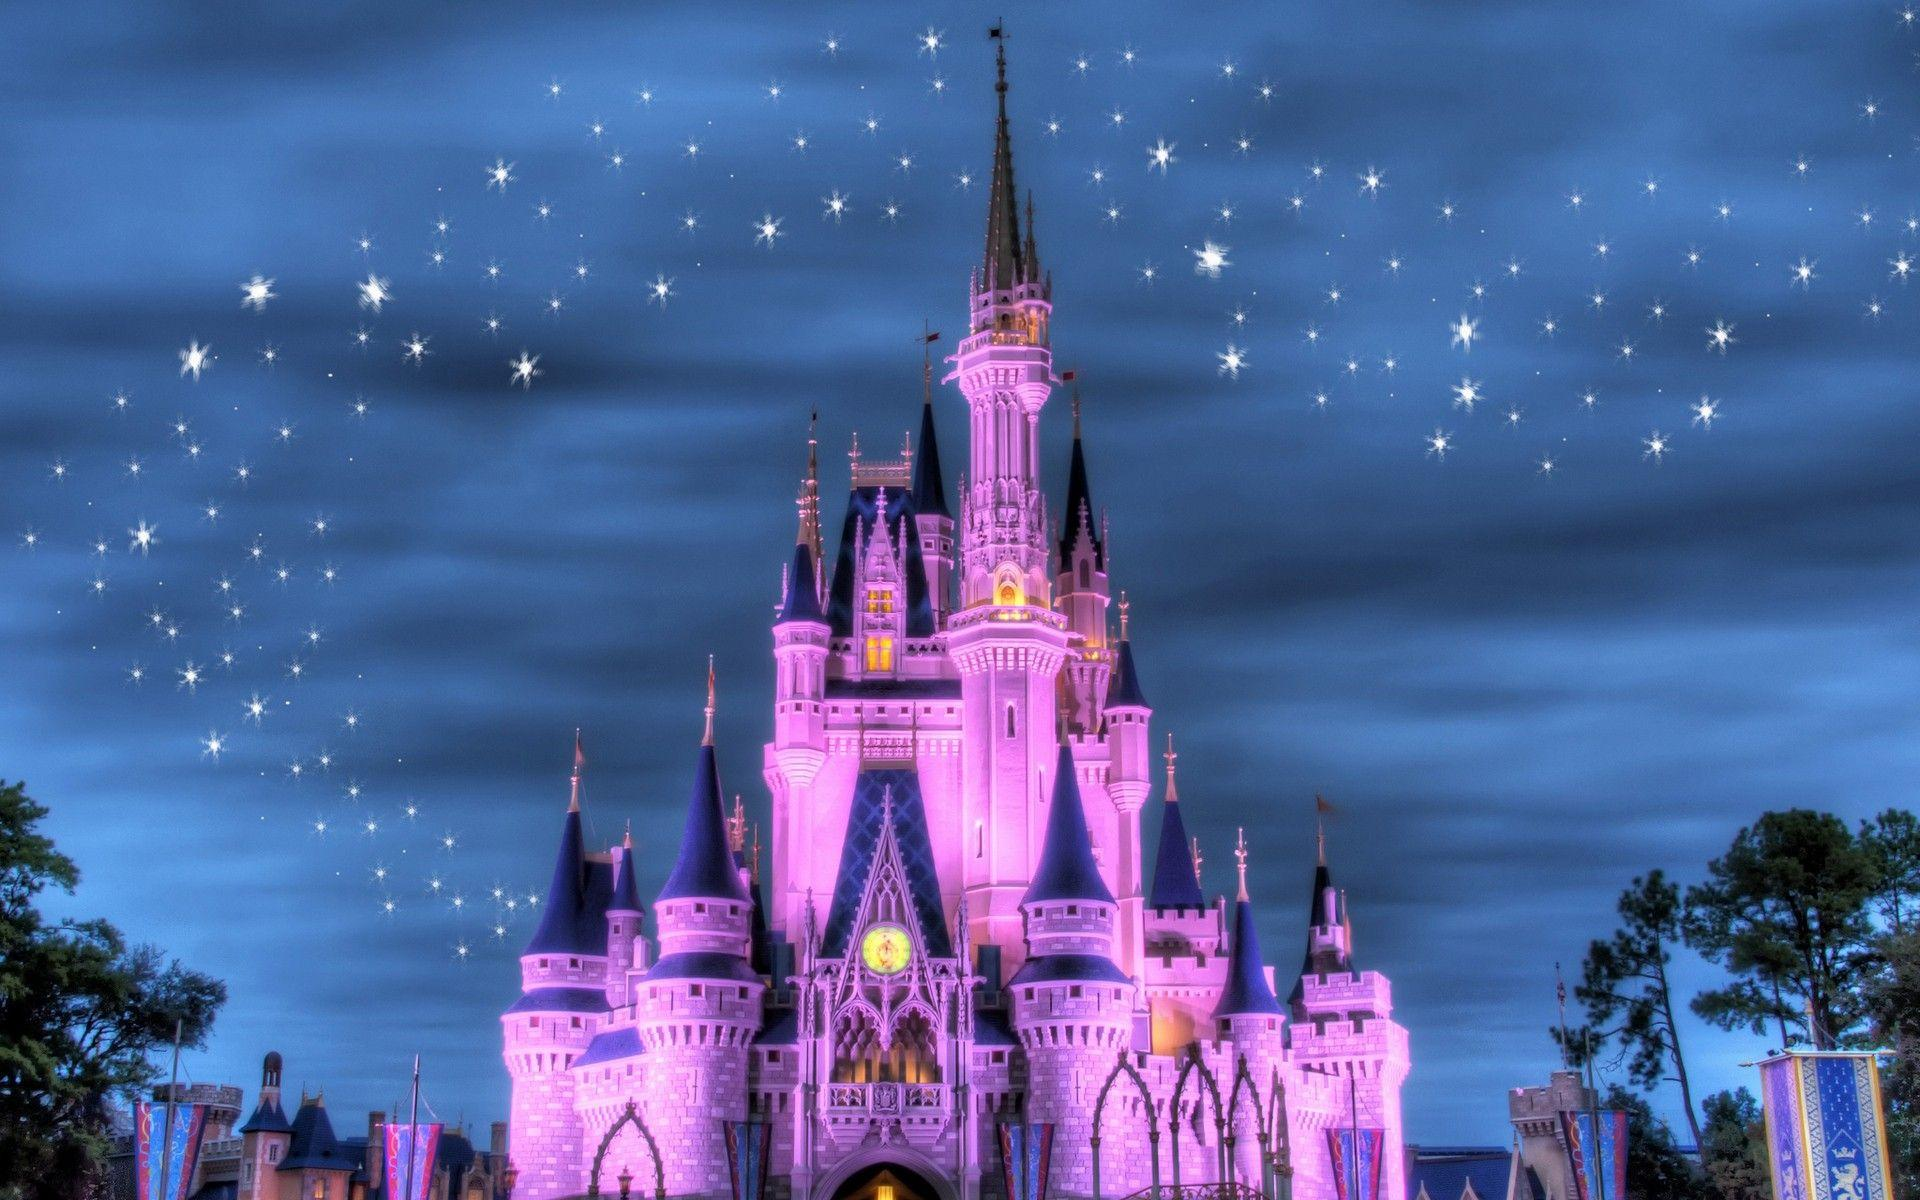 Disney Castle iPhone Wallpaper - WallpaperSafari